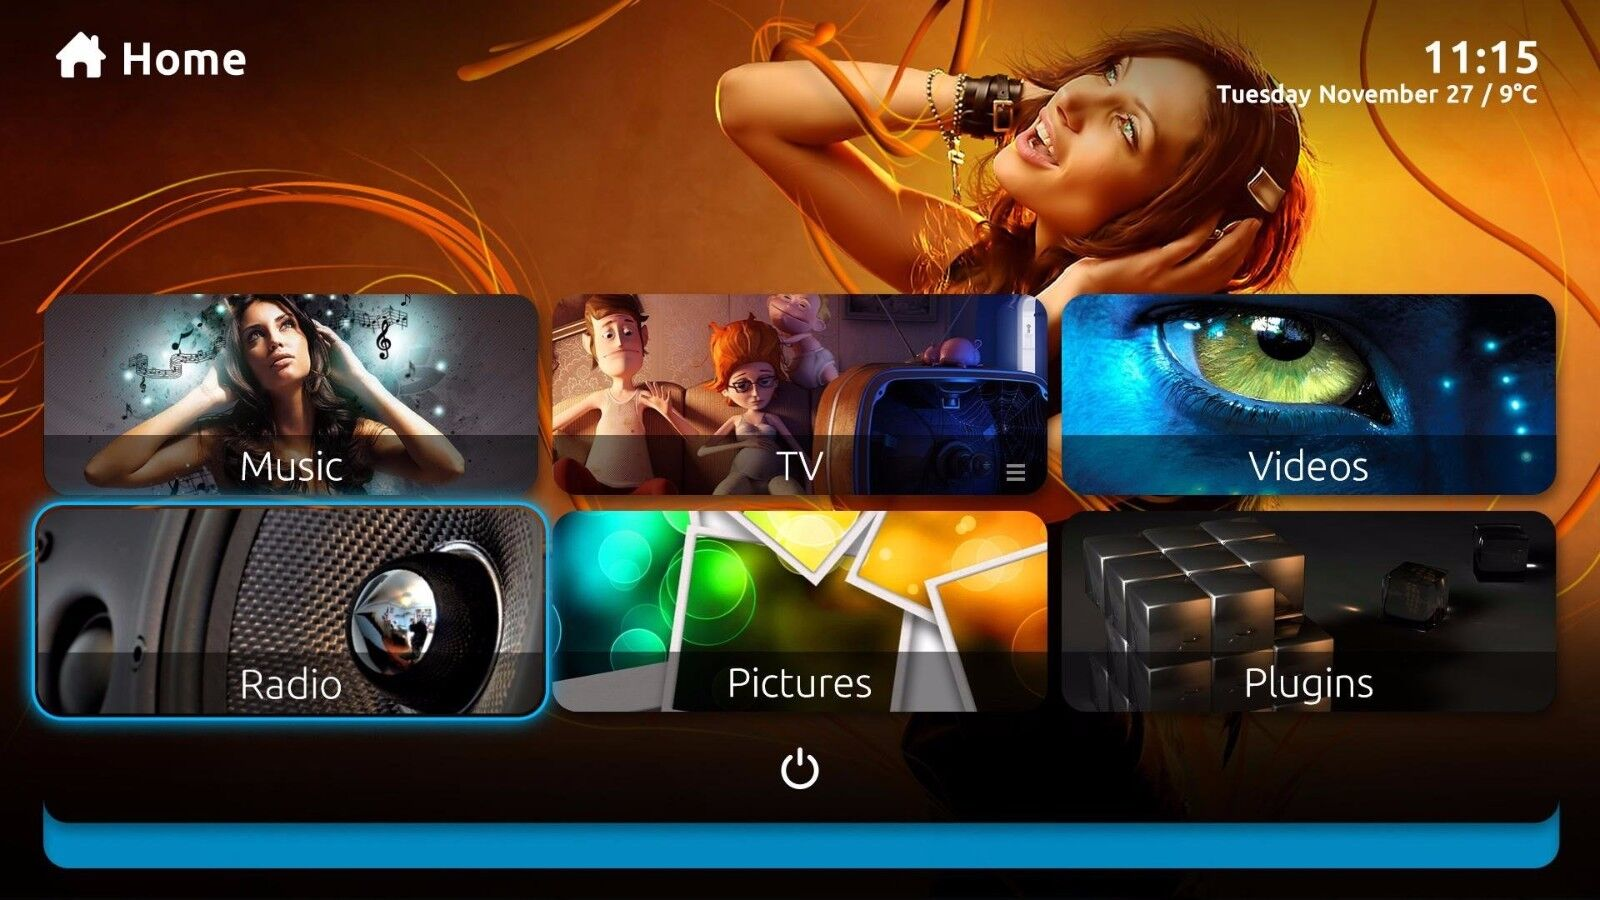 MediaPortal (Software to Turn Your PC into a Very Advanced MediaCenter/HTPC) PC